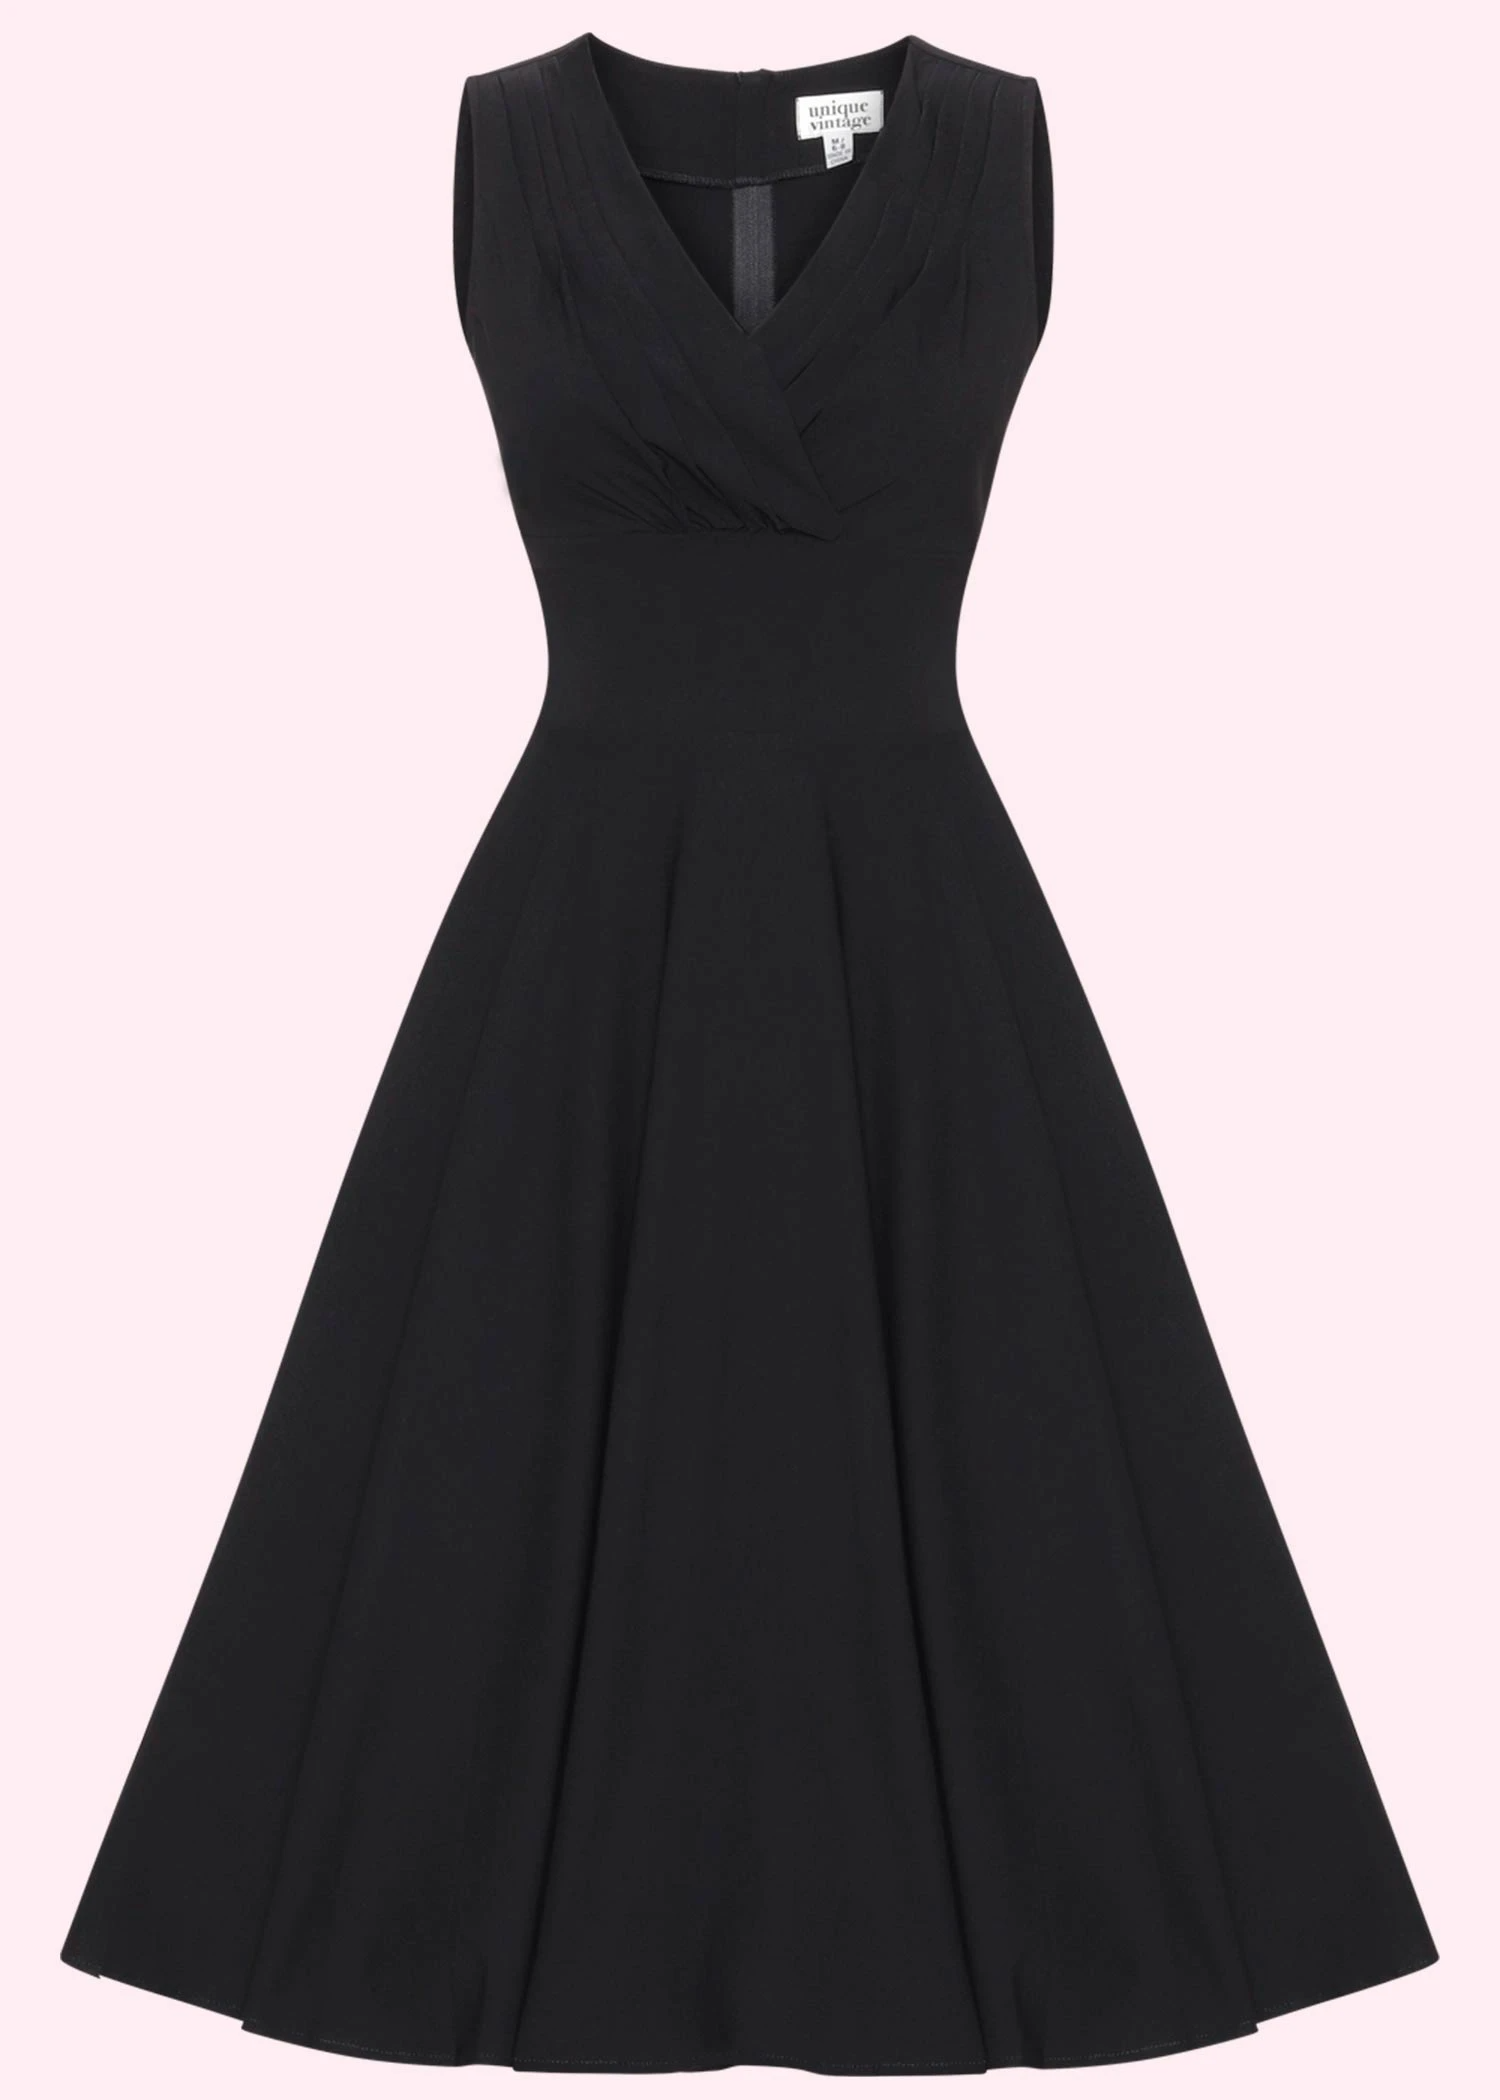 Delores swing dress out sleeves